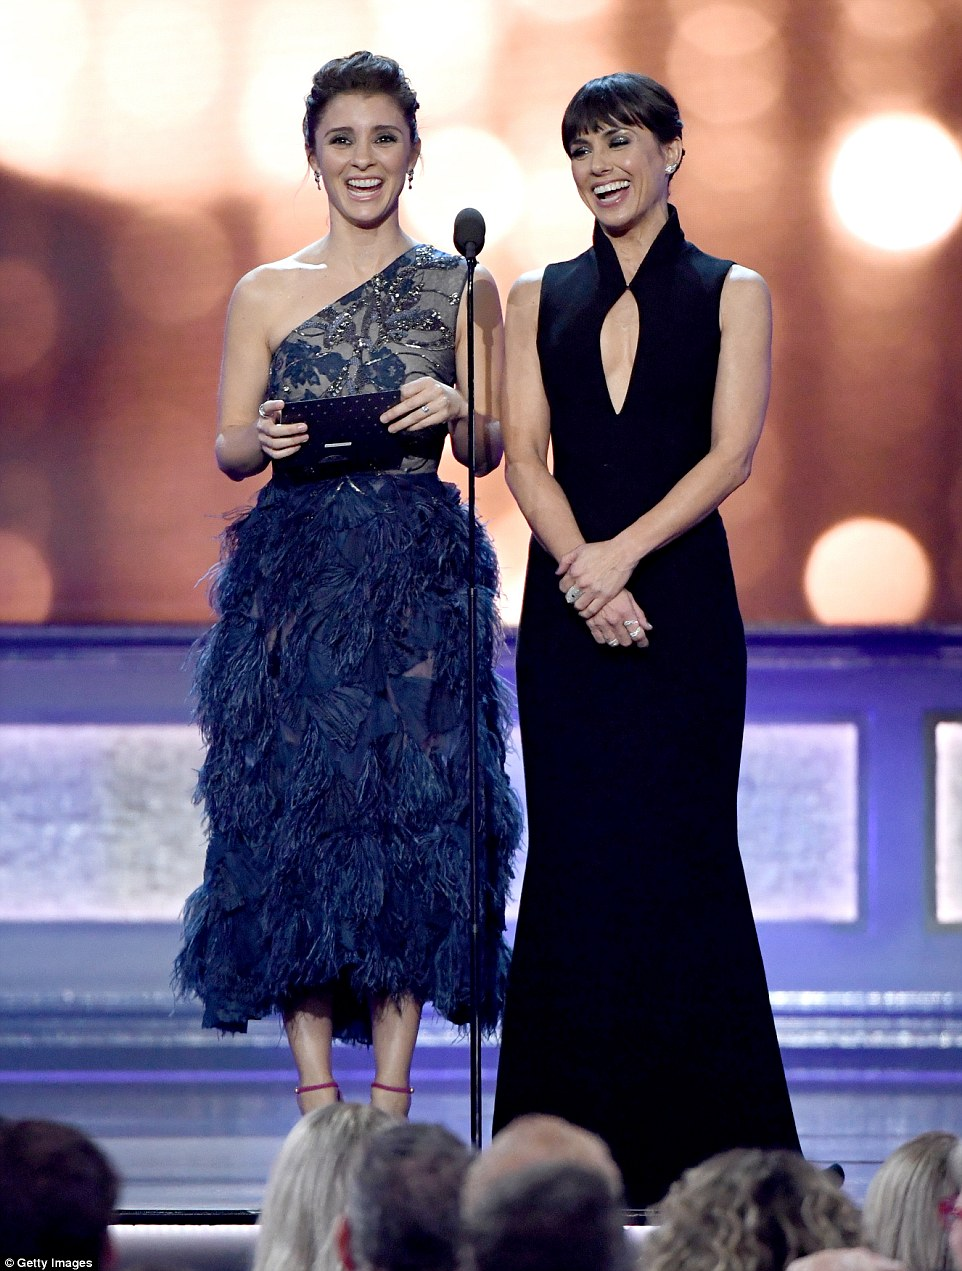 Stunners: Shiri Appleby and Constance Zimmer had fun as they presented